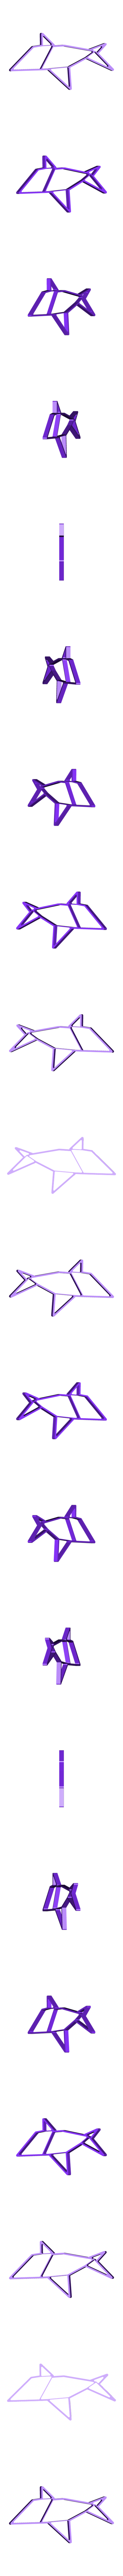 customized_origami_shark.stl Download free STL file Customizable Origami Shark • 3D printing design, MightyNozzle